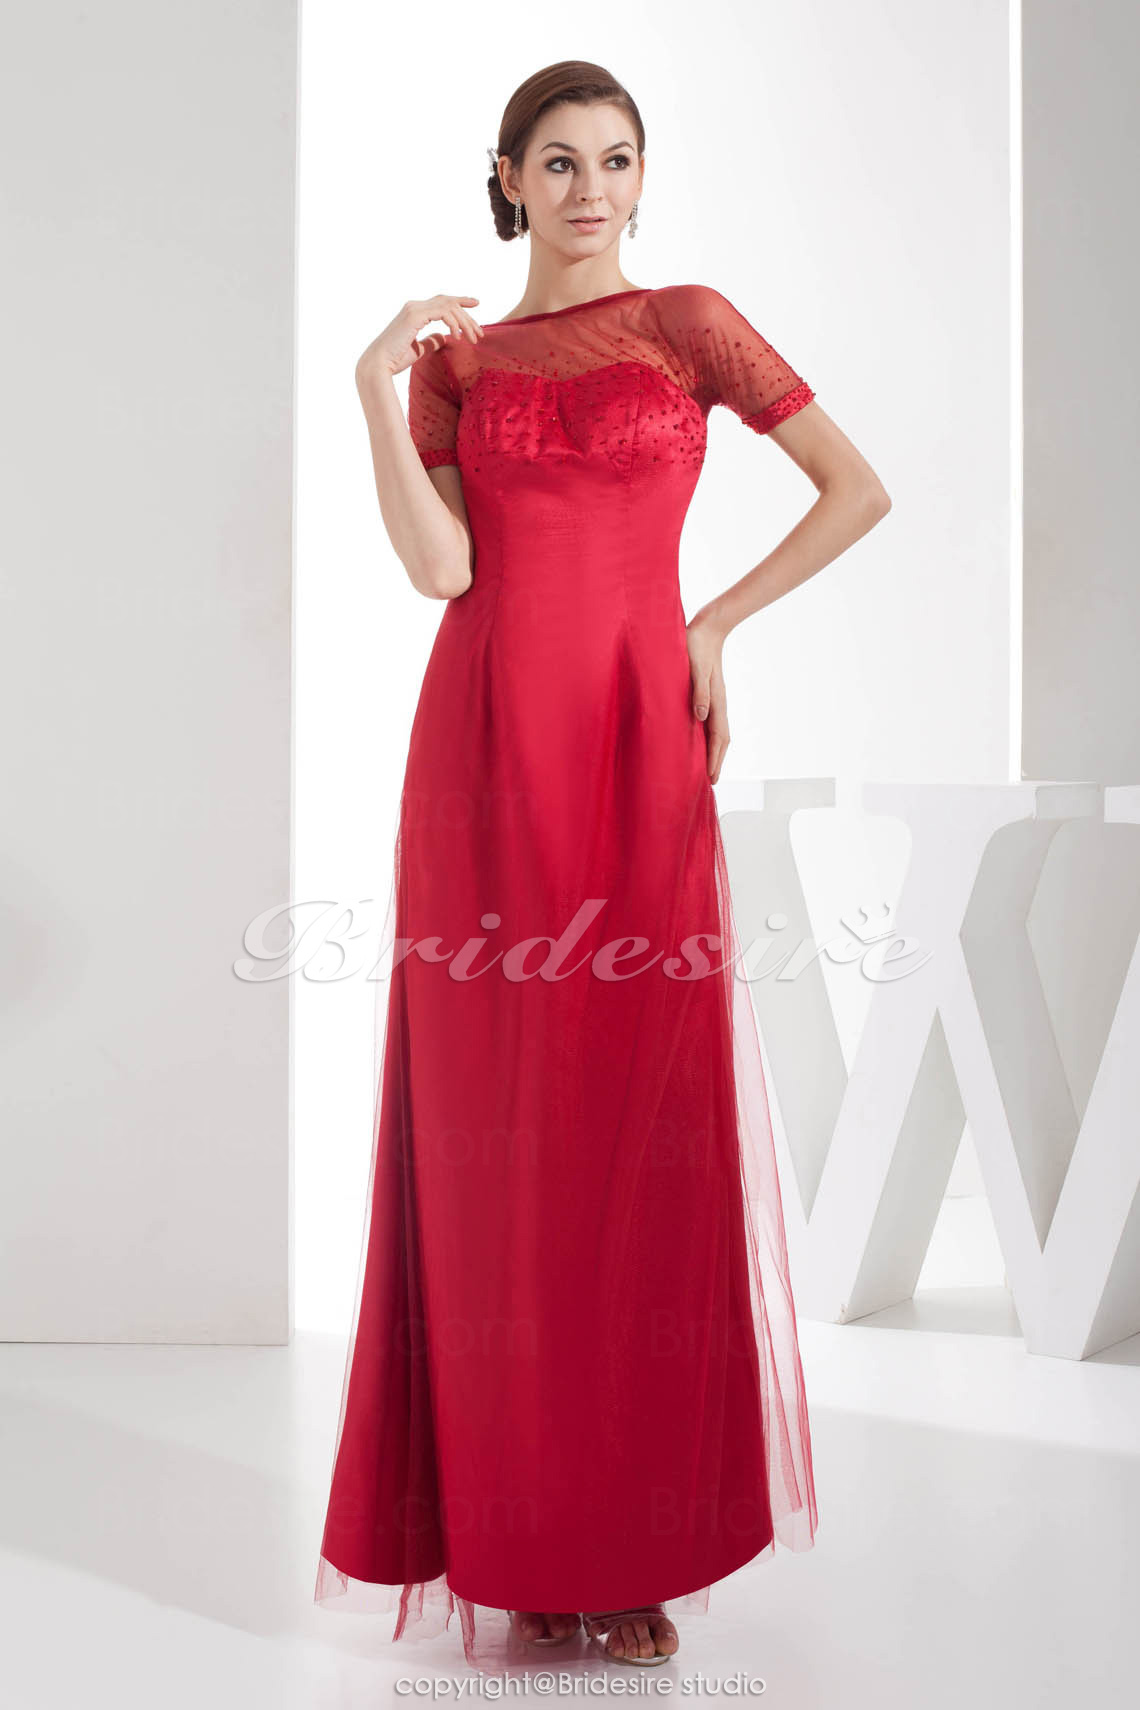 Sheath/Column Bateau Floor-length Short Sleeve Satin Chiffon Dre